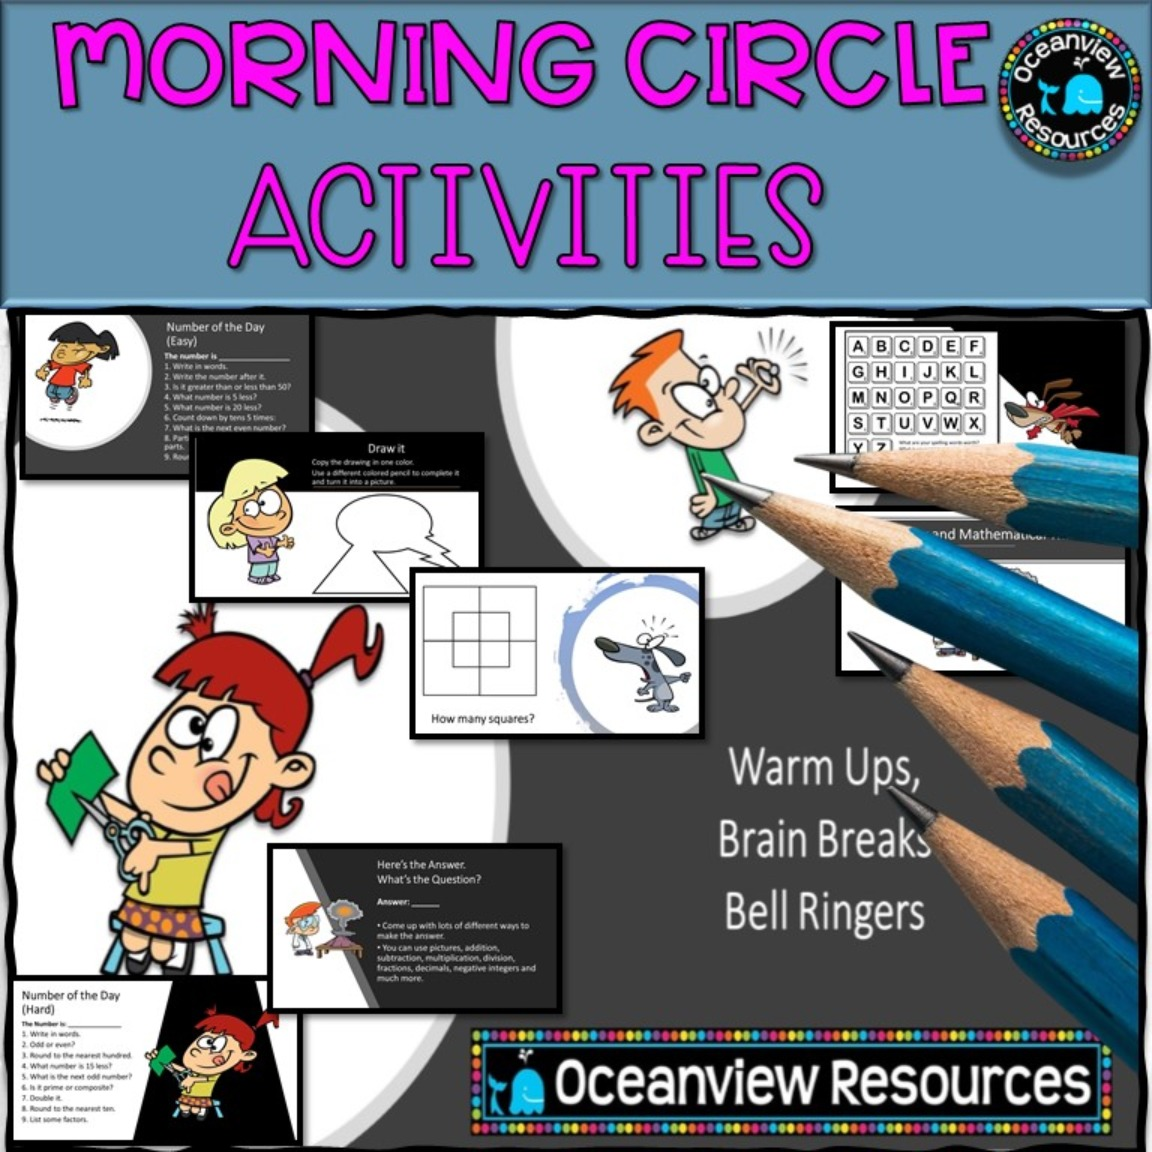 Warm ups, Brain Breaks or Bell ringing activities